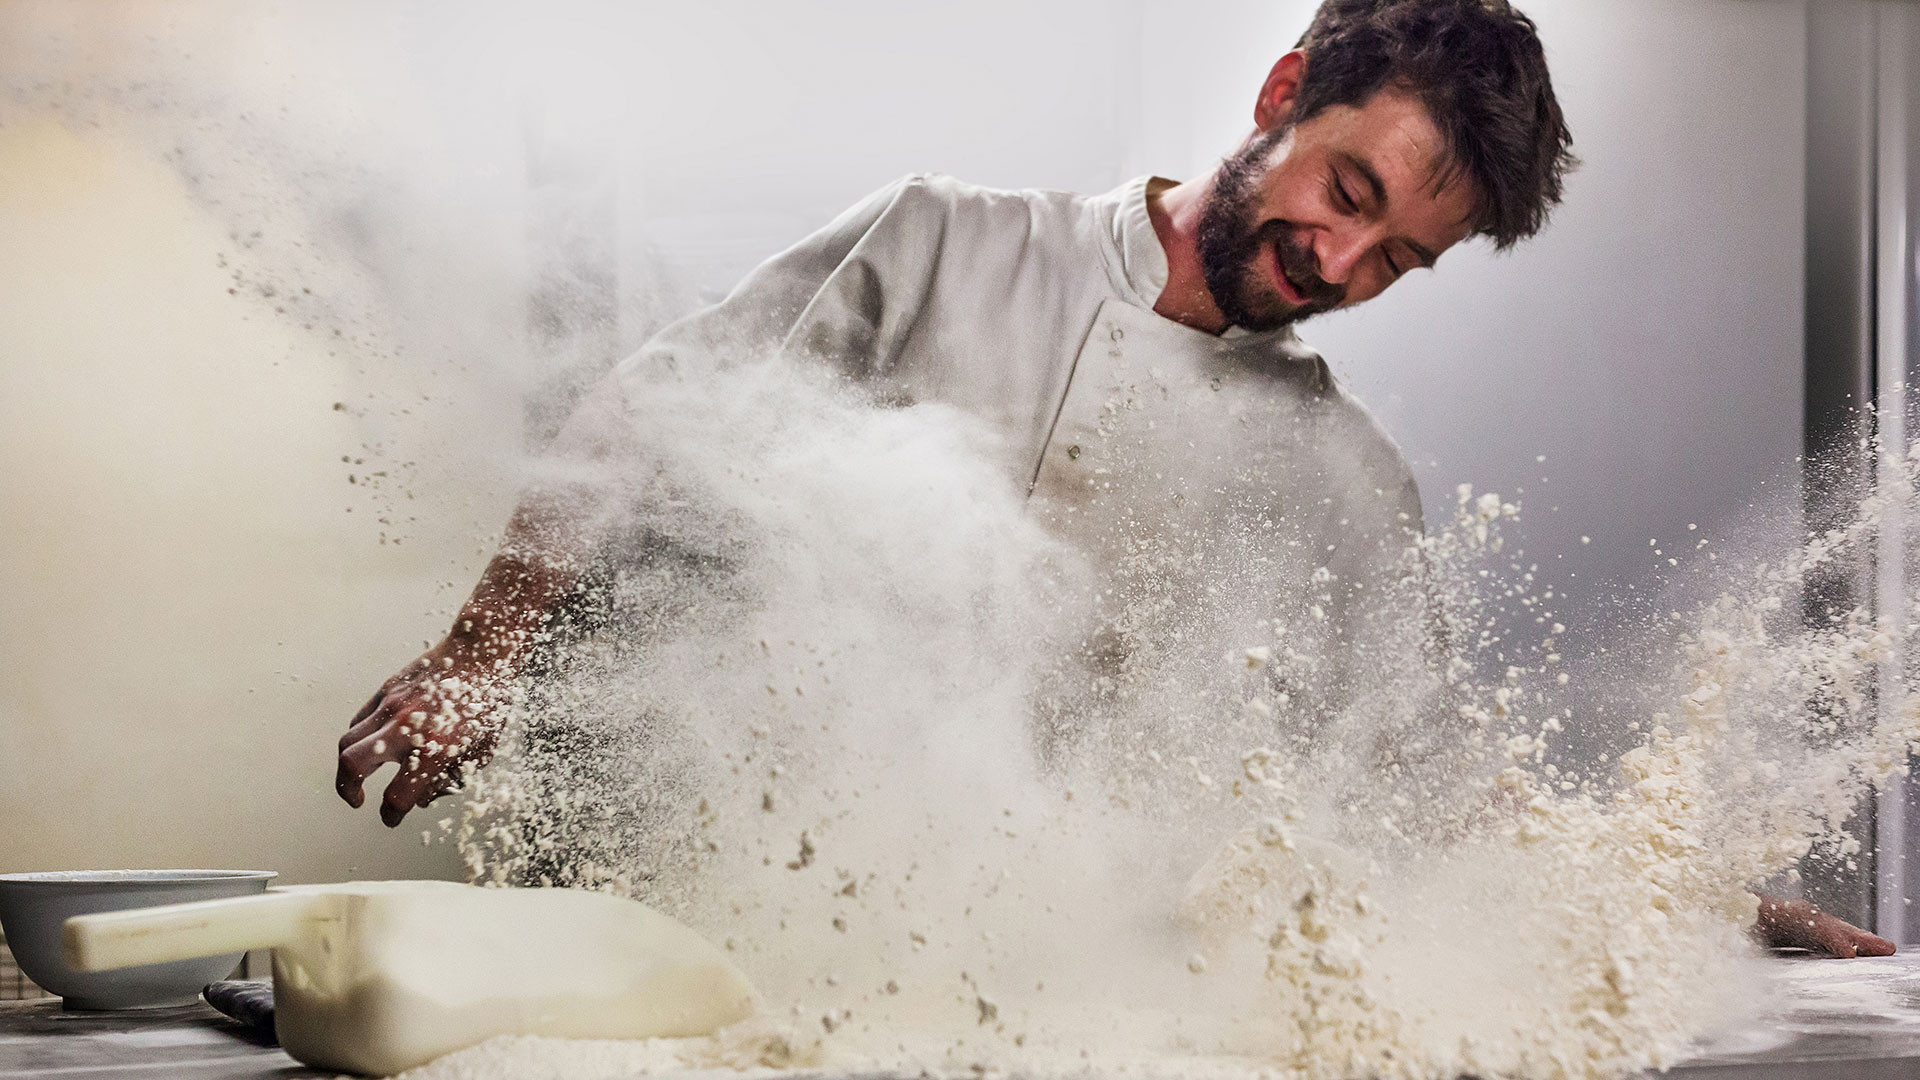 Pink Lady Food Photographer of the Year Winner, Mark Benham, Flour Frenzy